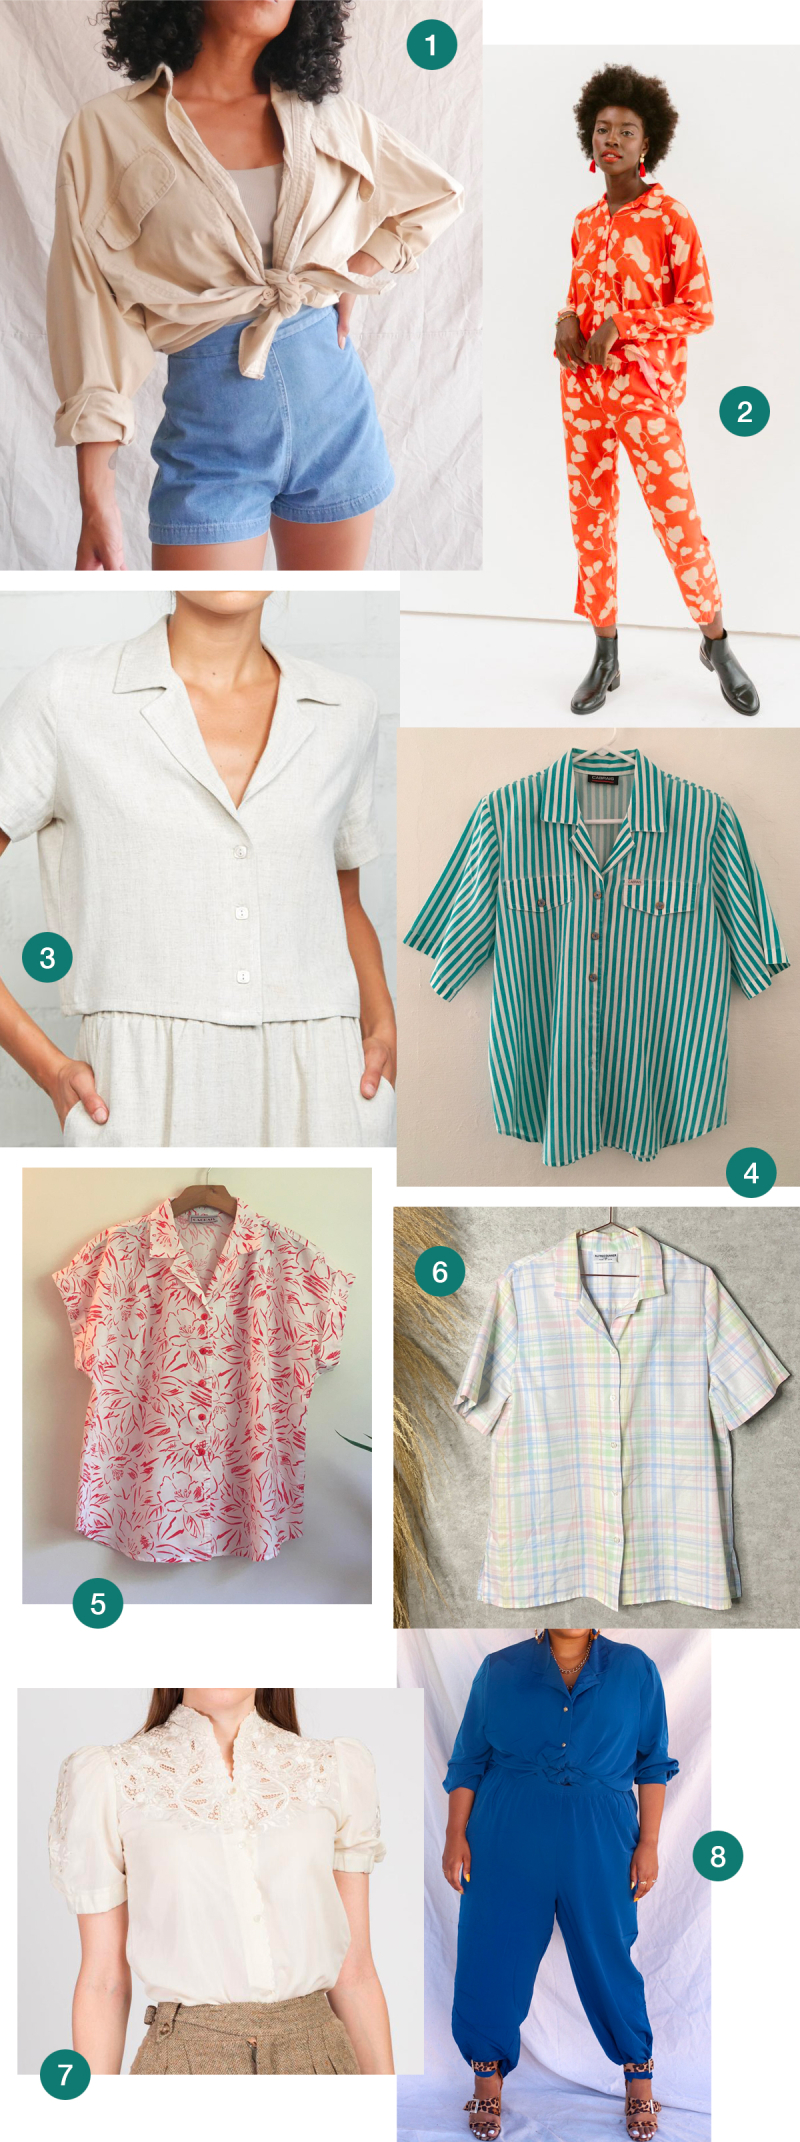 let me shop for you: button-up shirts!